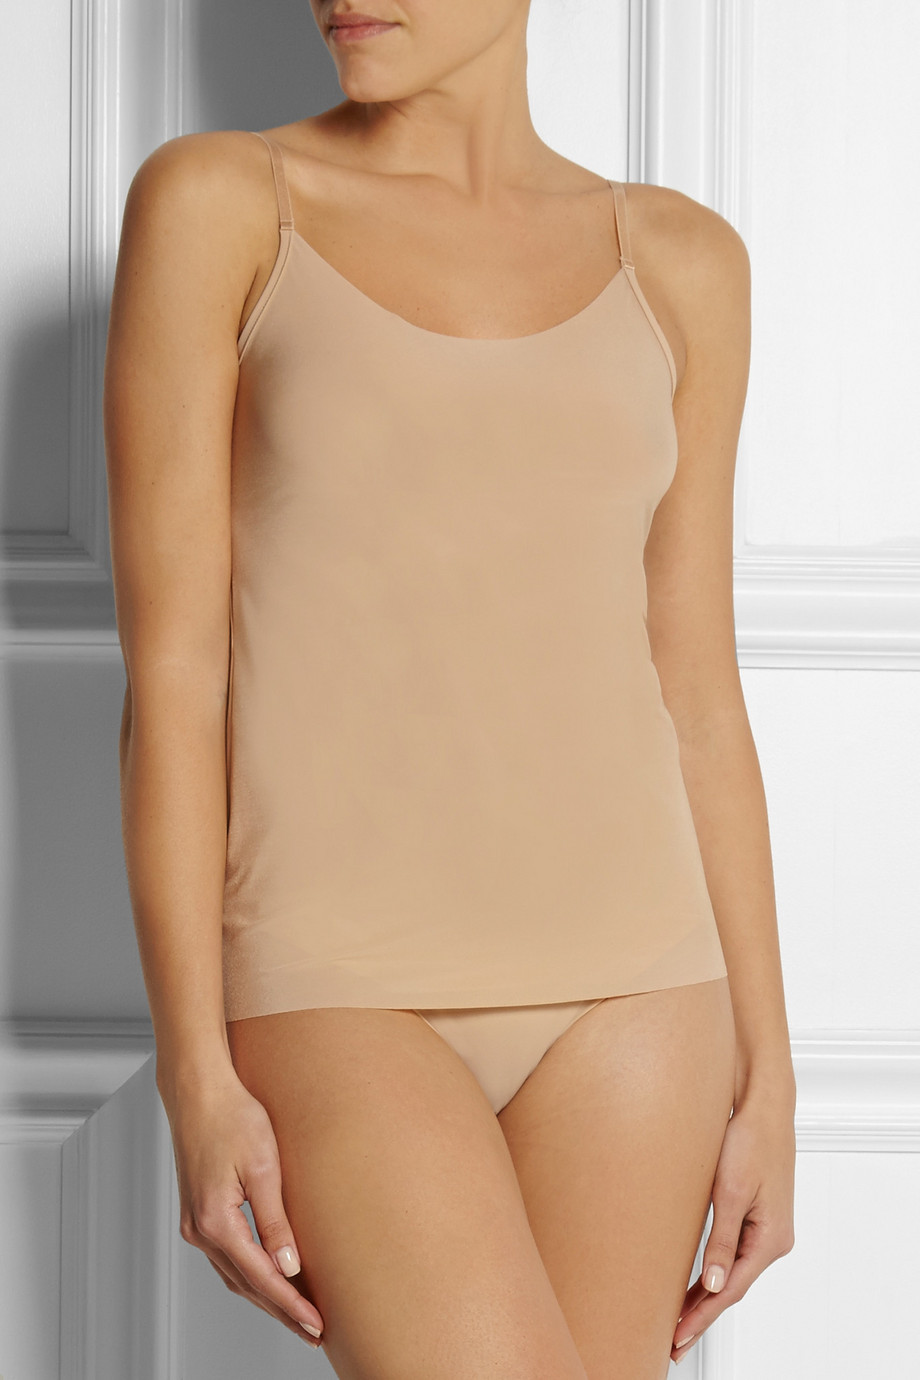 COMMANDO Whisper Weight stretch camisole